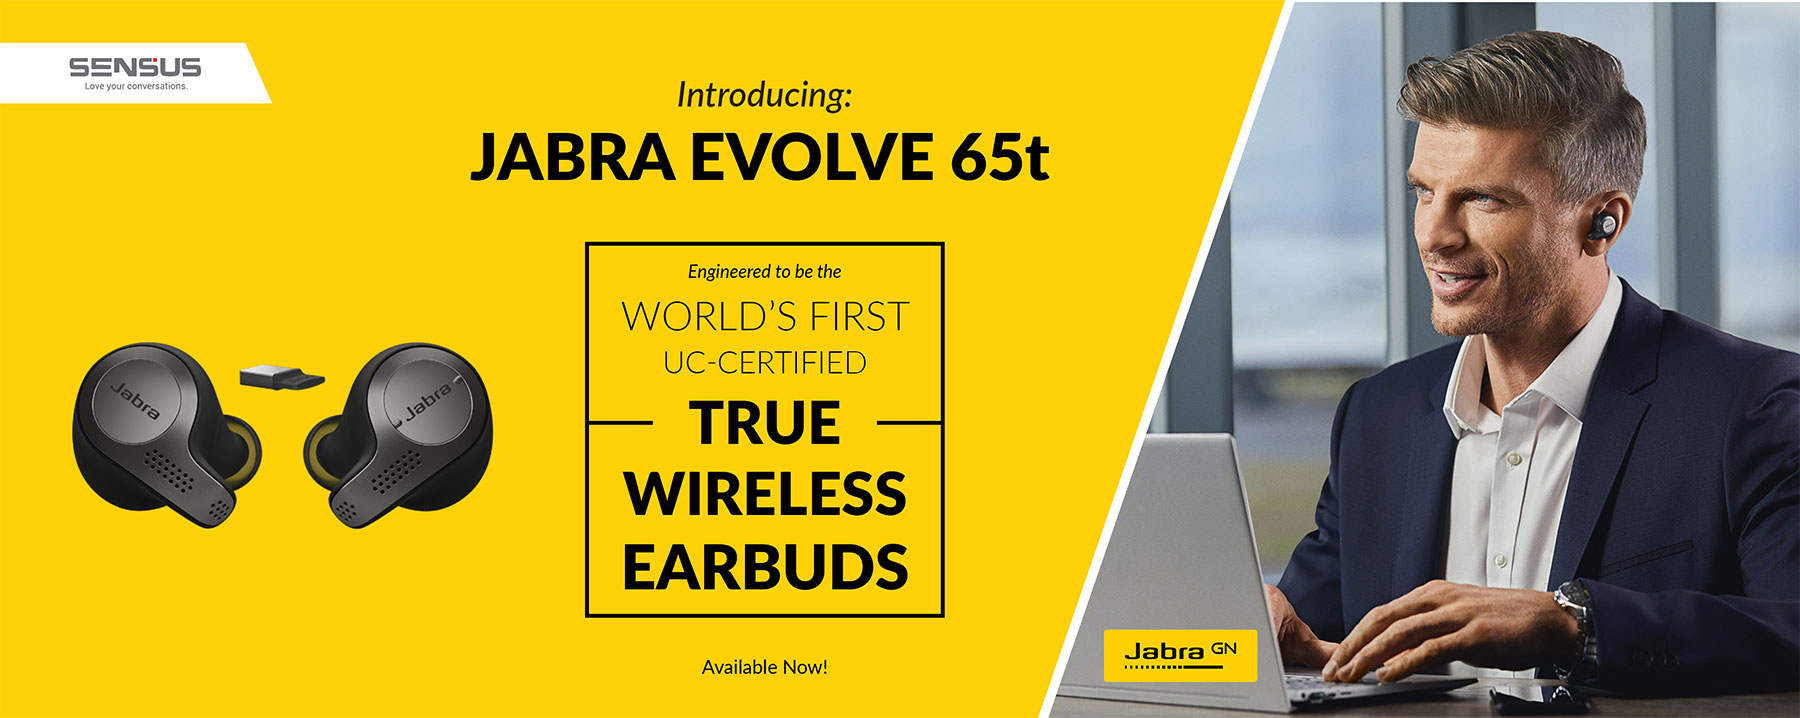 /medias/Jabra-Evolve-65t-from-SENSUS.jpg